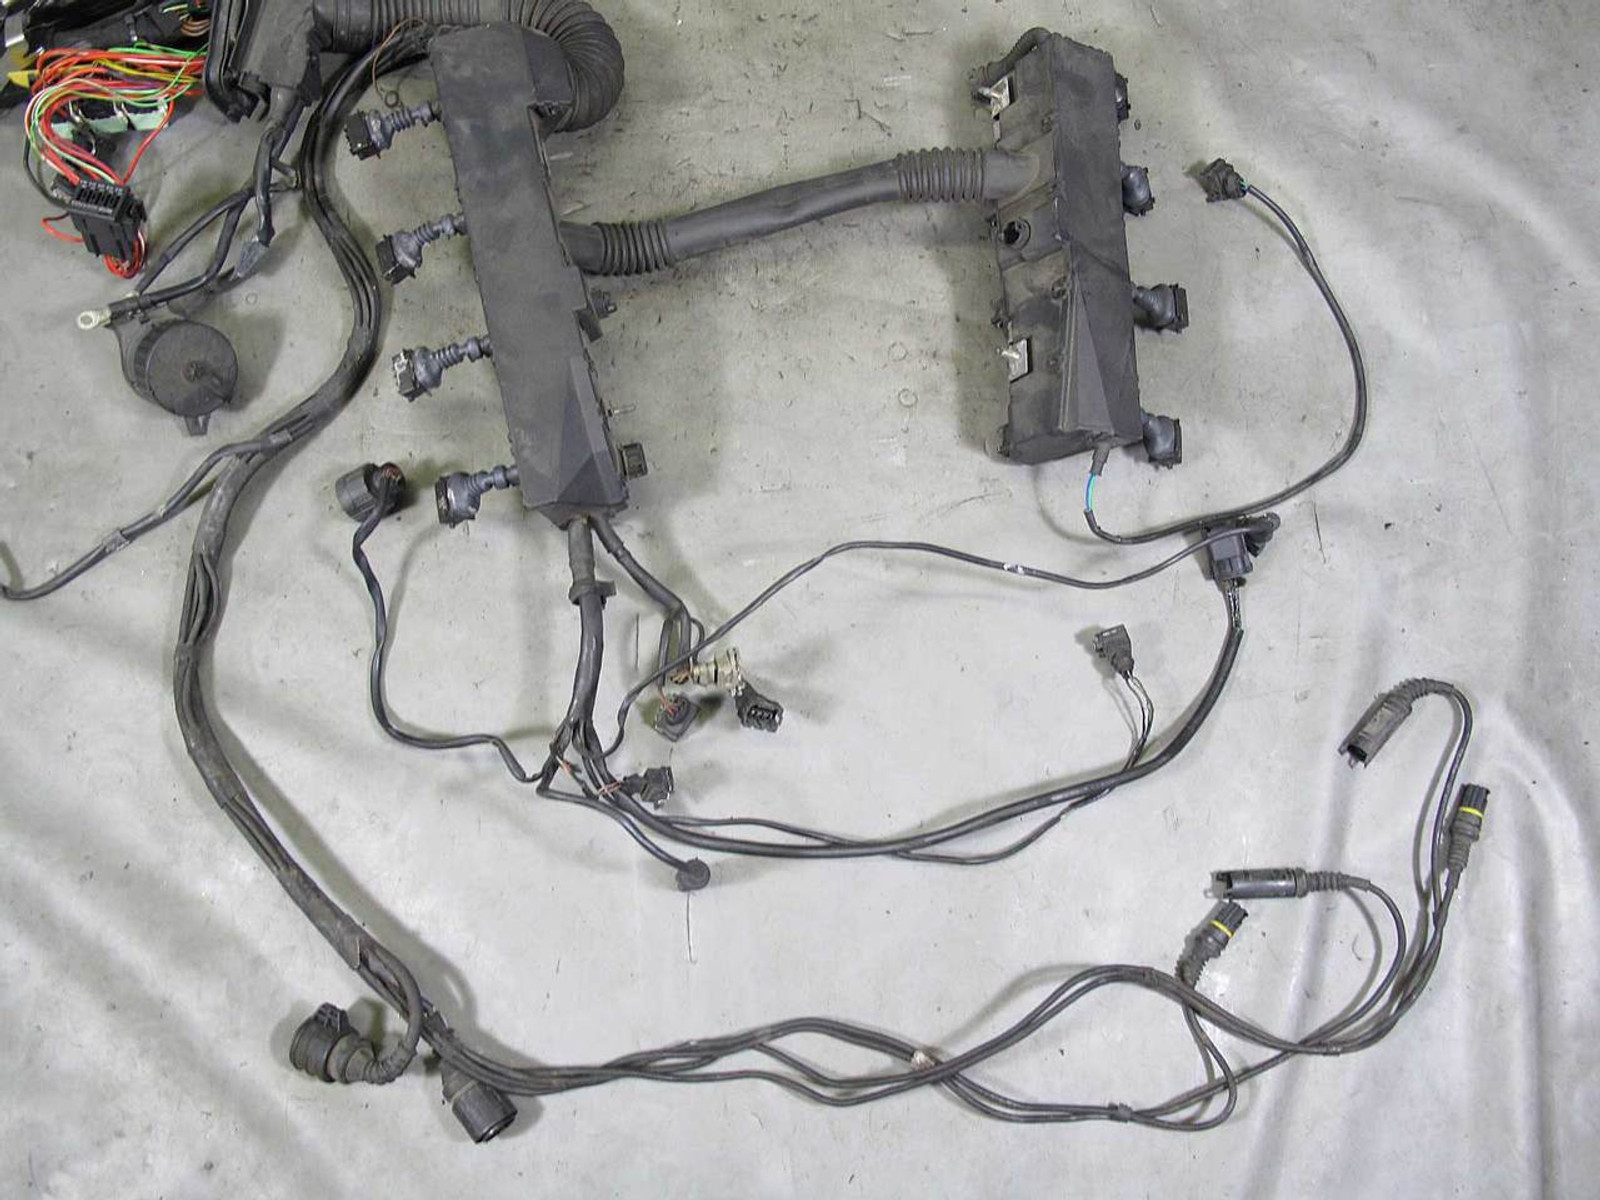 engine wiring harness complete used oem img 1996 1997  [ 1280 x 960 Pixel ]